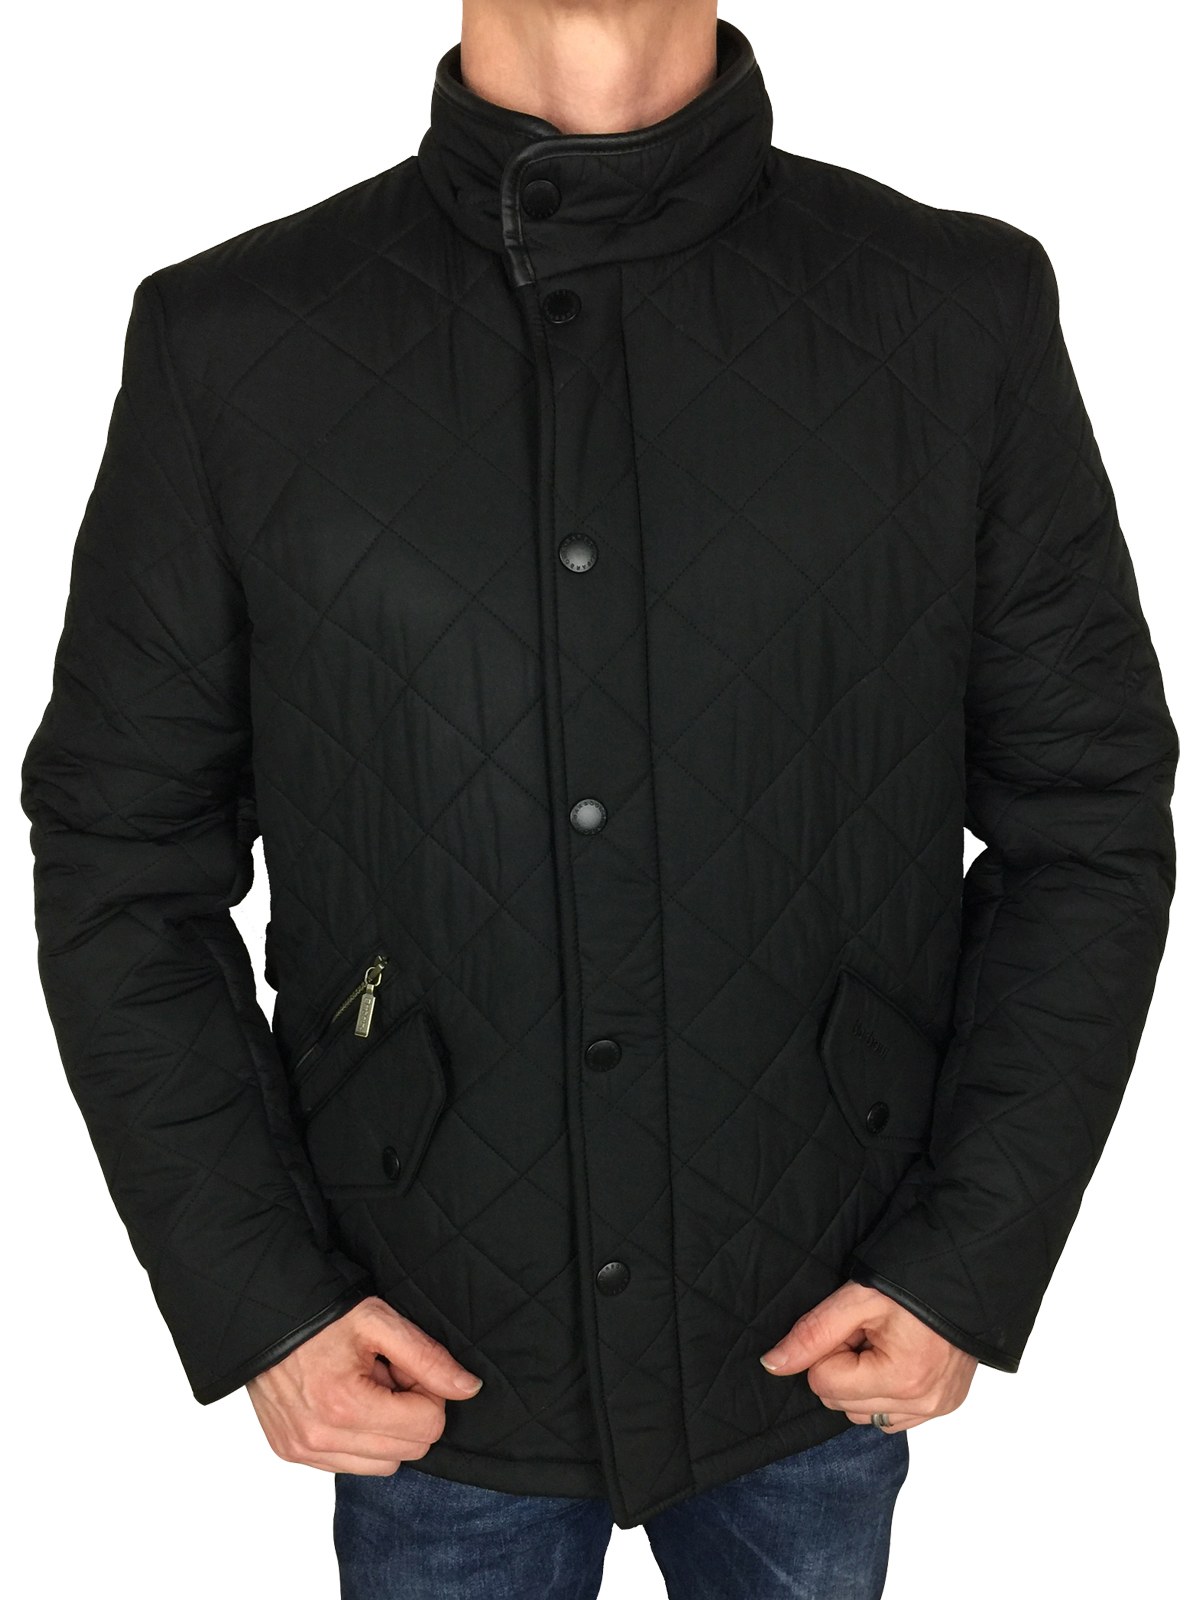 BARBOUR-INTERNATIONAL-Linea-Uomo-Giacca-Trapuntata-Powell-in-Nero-S-M-L-XL-XXL-3XL